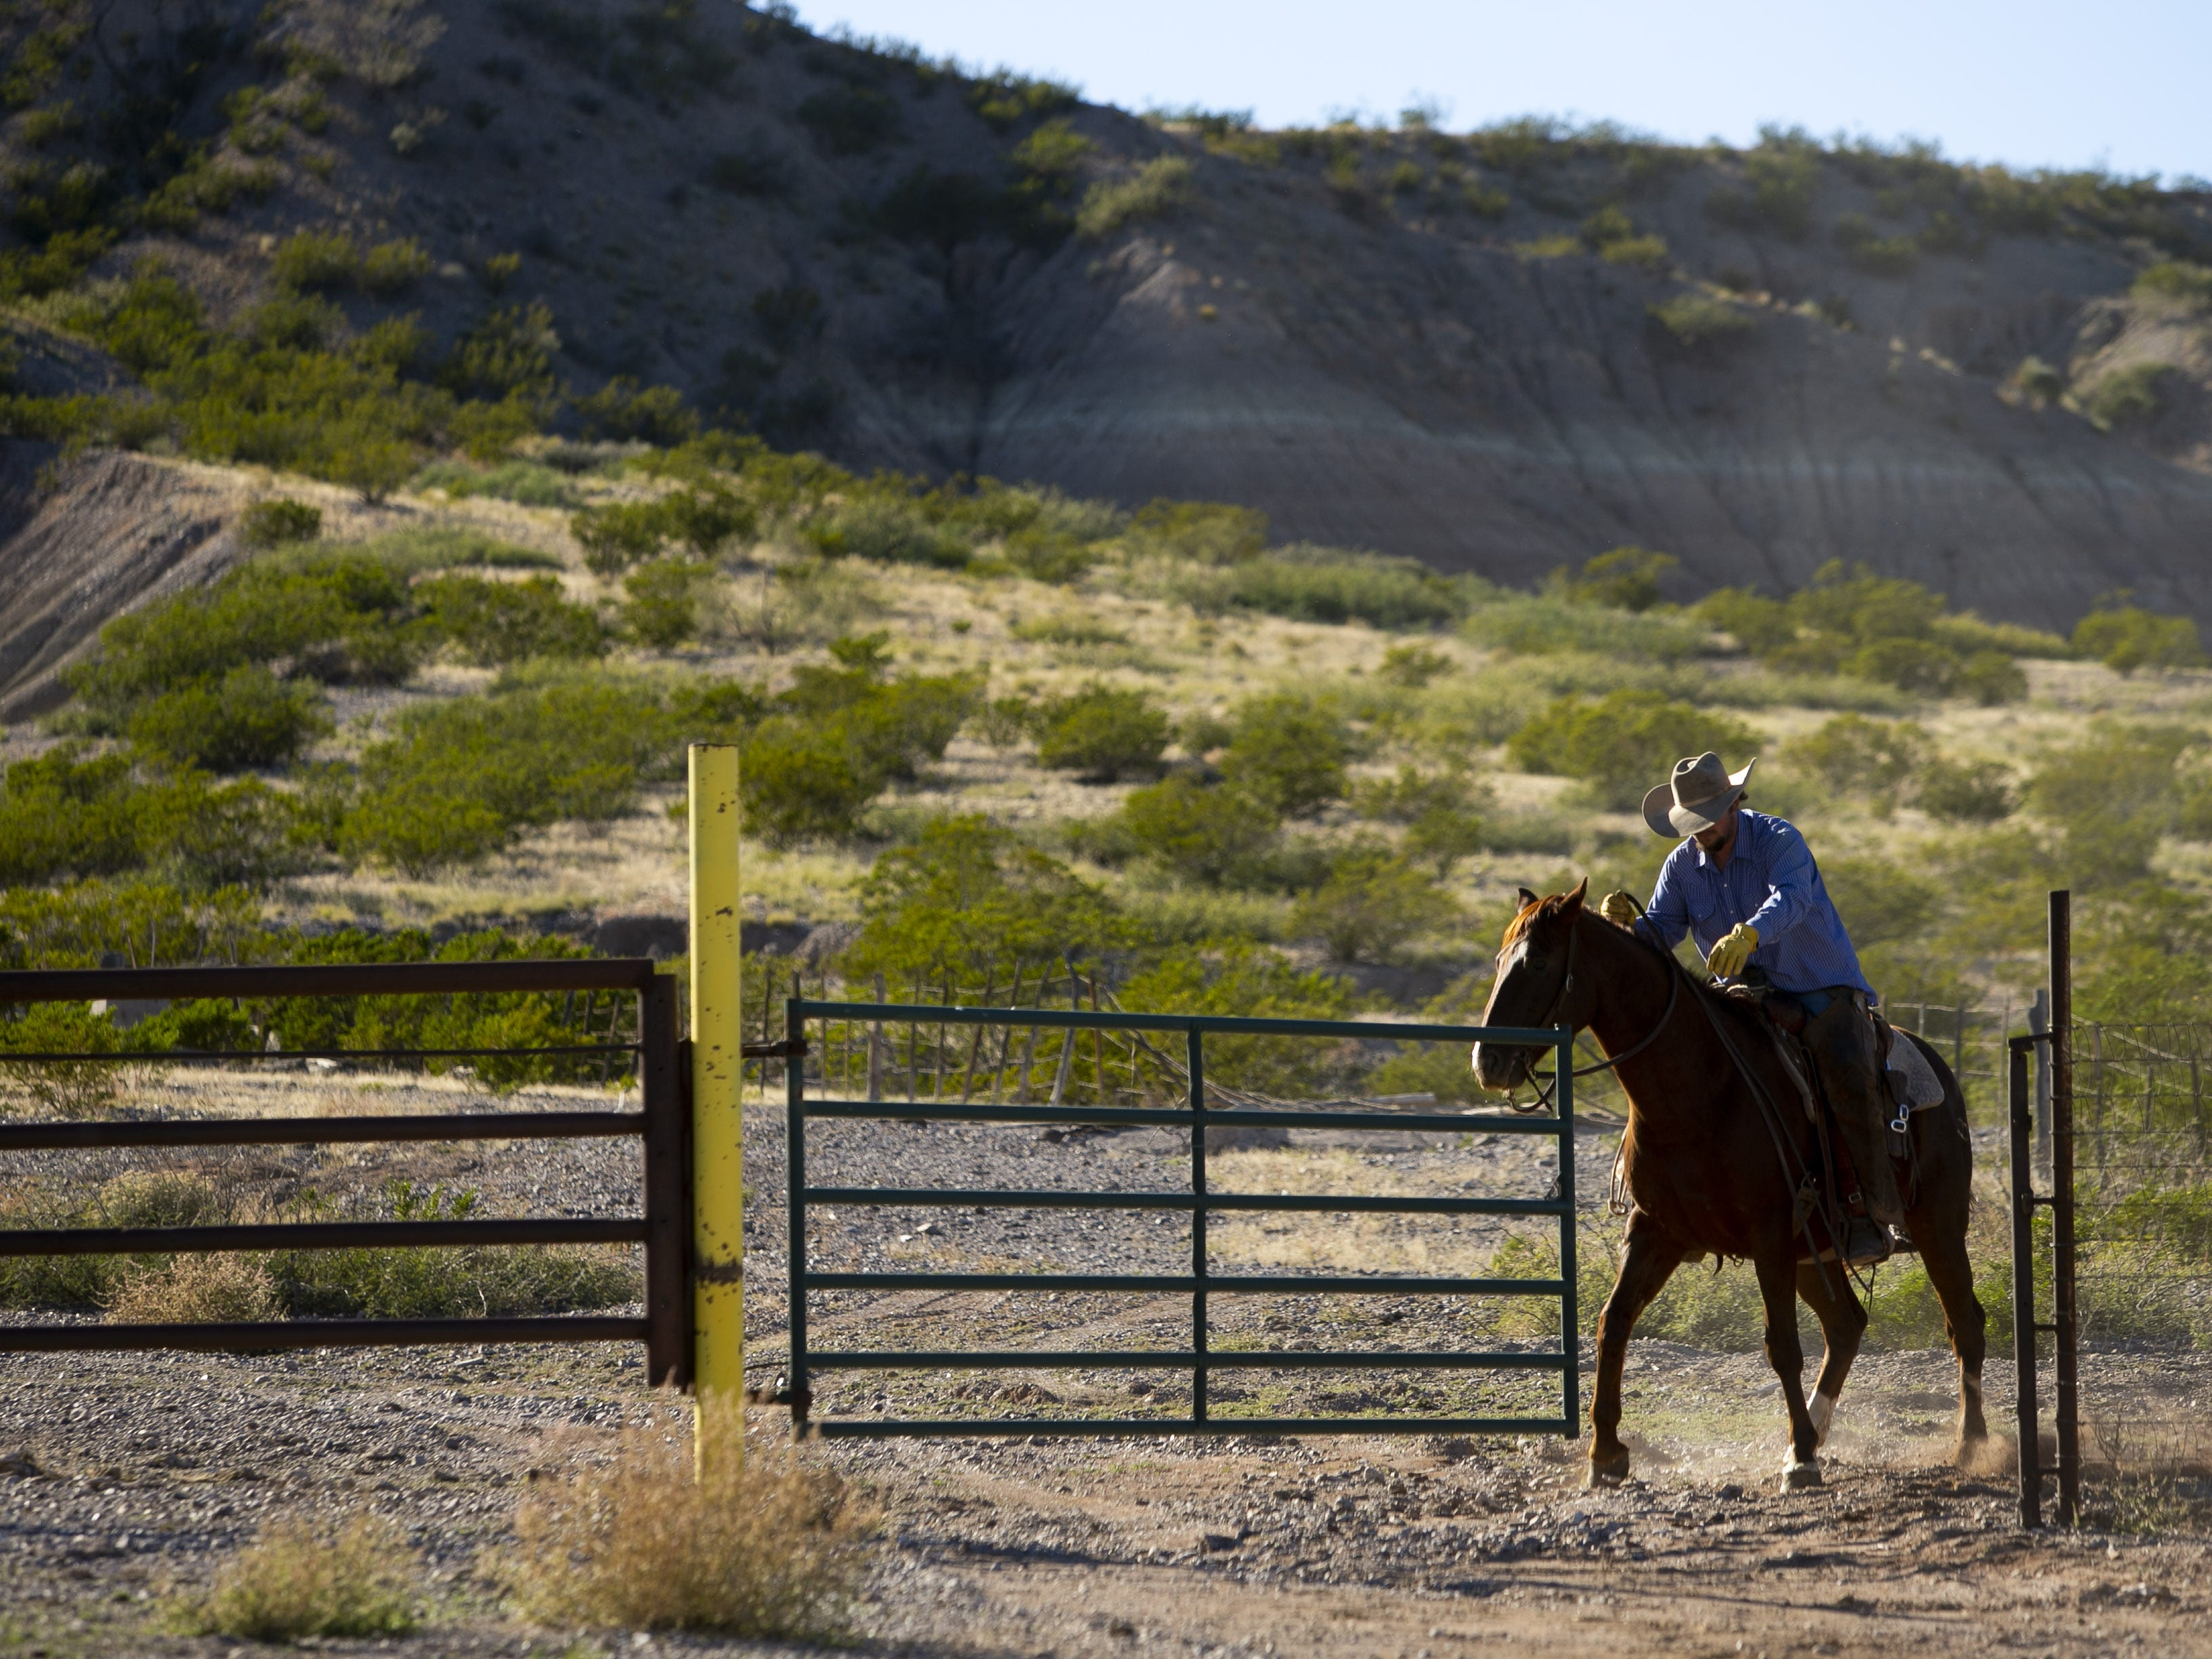 Cowboy Clayton Davis at the Lazy B Ranch outside of Duncan, Ariz., on Nov.r 2, 2018. Former Supreme Court Justice Sandra Day O'Connor grew up on the ranch.